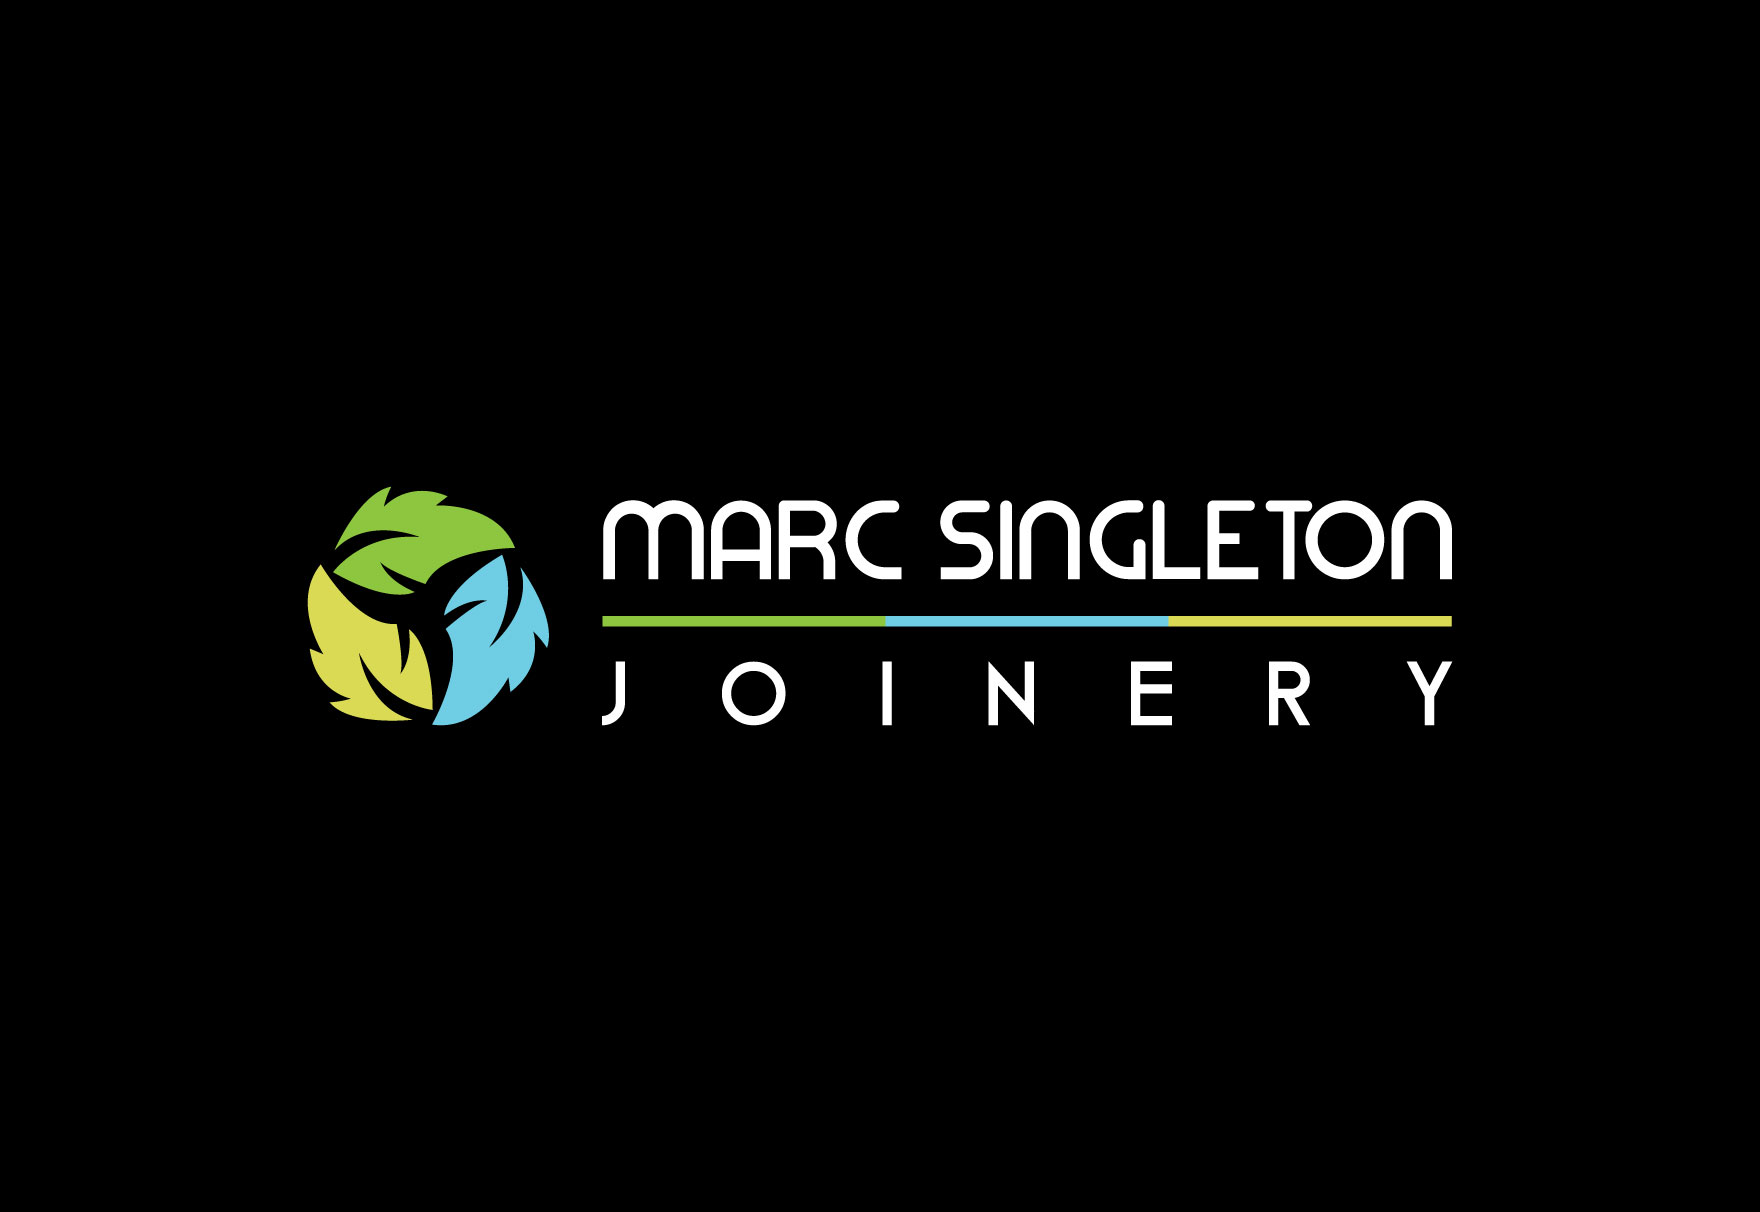 marc-singleton-joinery-logo-design